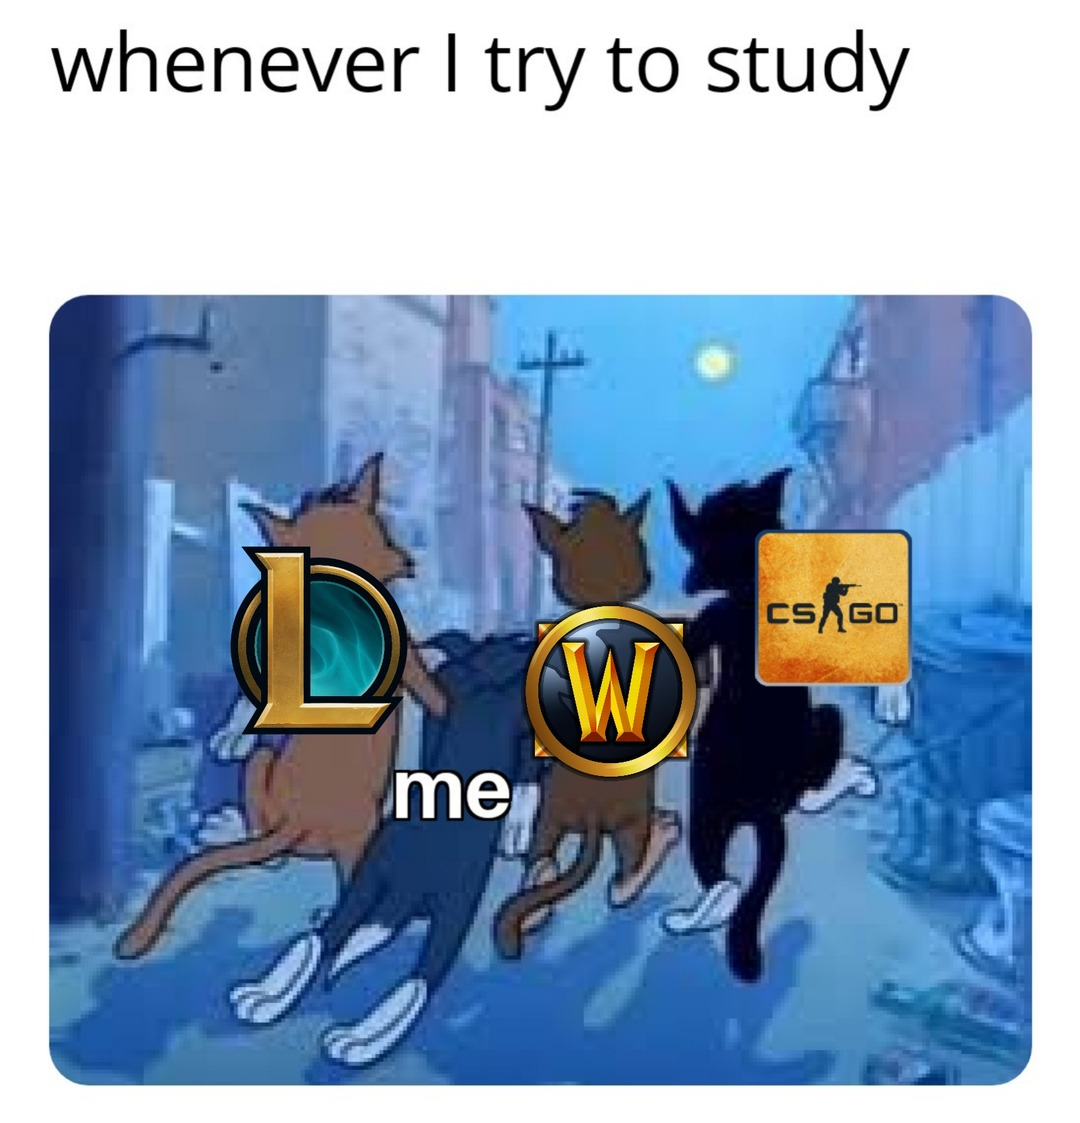 Whenever I try to study - meme